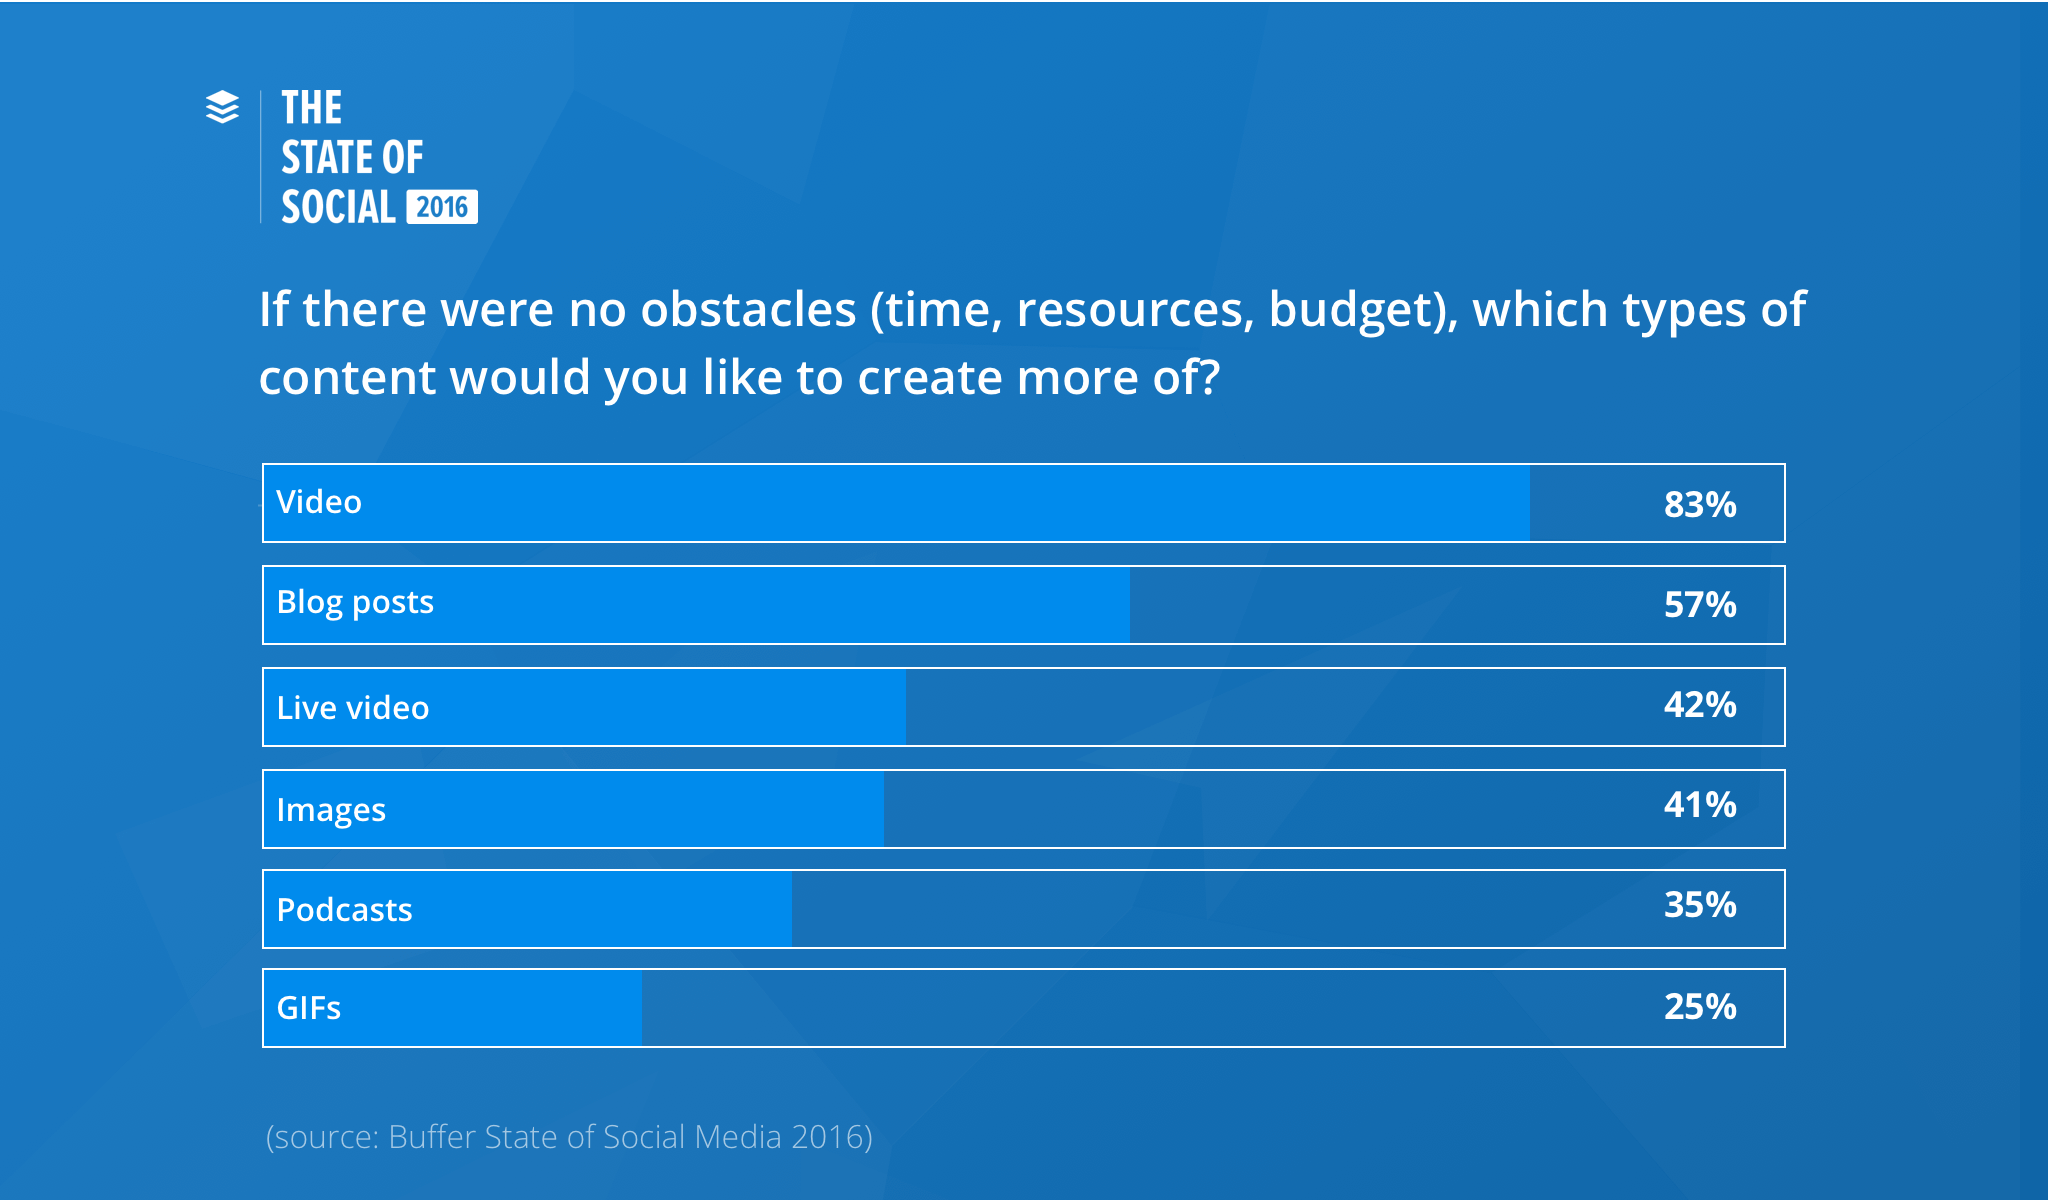 83% of marketers said they'd create more video content if there were no obstacles like time, resources, and budget (Buffer, 2016). 43% of marketers said they'd create more live videos if there were no obstacles like time, resources, and budget (Buffer, 2016).